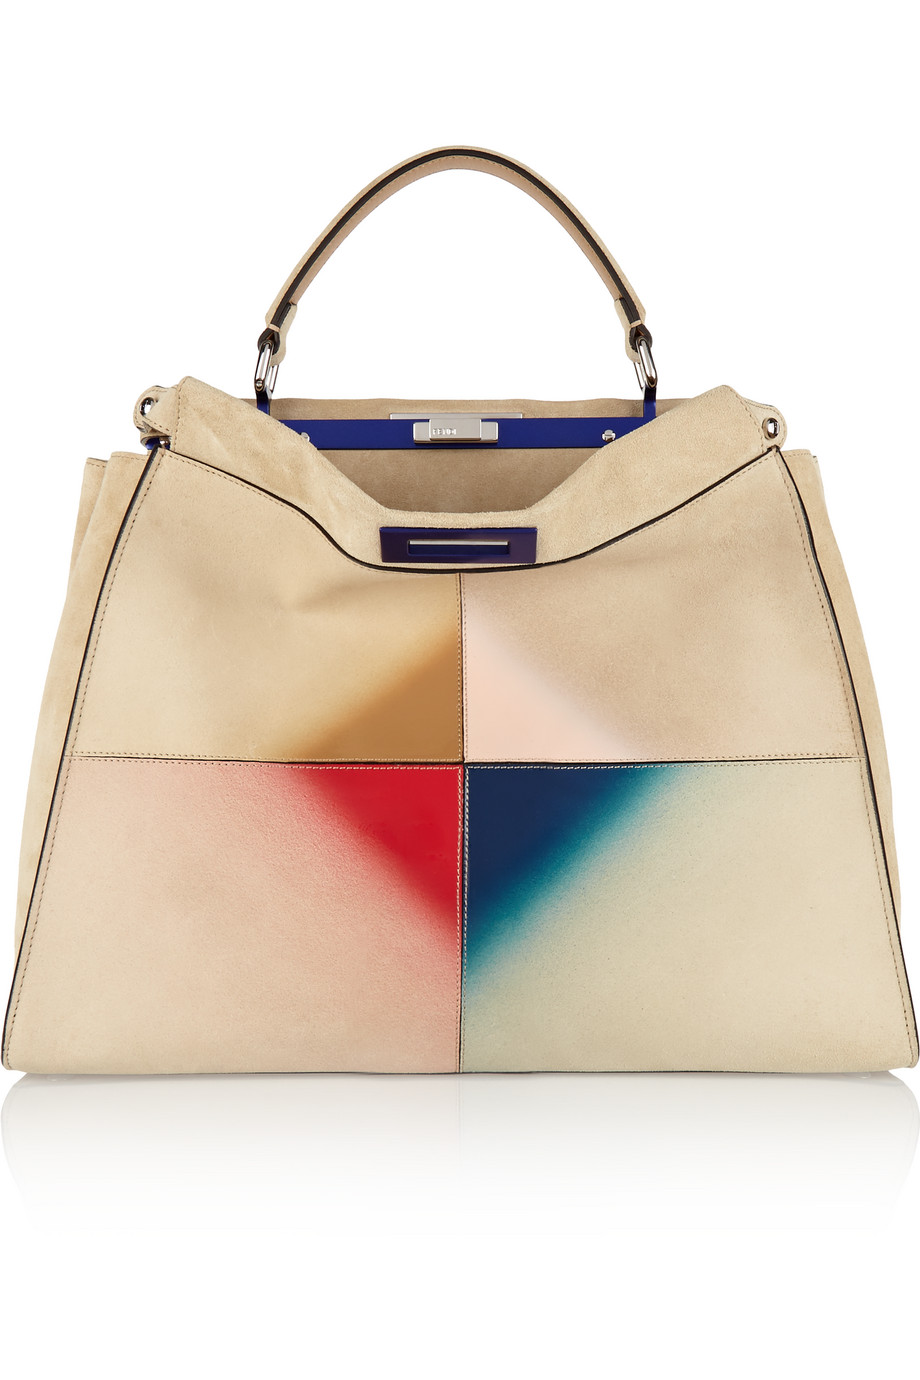 Fendi Peekaboo Large Patent Leather-Trimmed Suede Tote, Cream, Women's